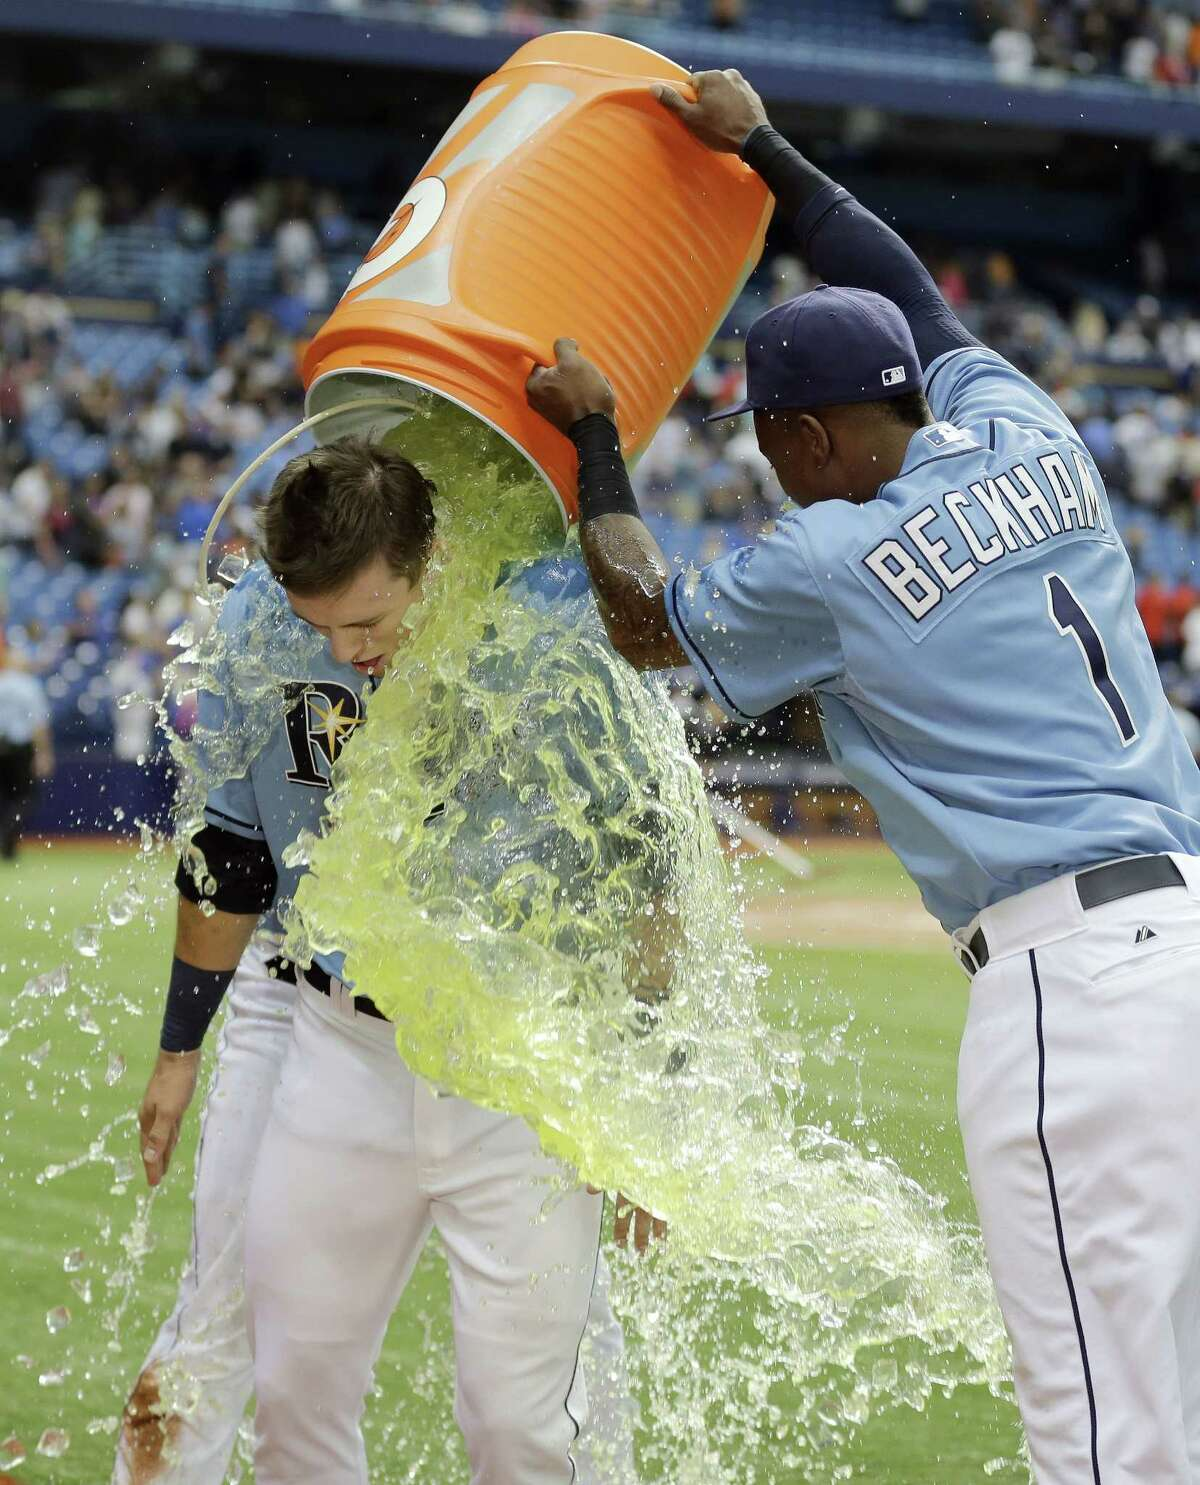 The Tampa Bay Rays' Tim Beckham douses Richie Shaffer with Gatorade after the Rays defeated the New York Mets 4-3 on Sunday in St. Petersburg, Fla.